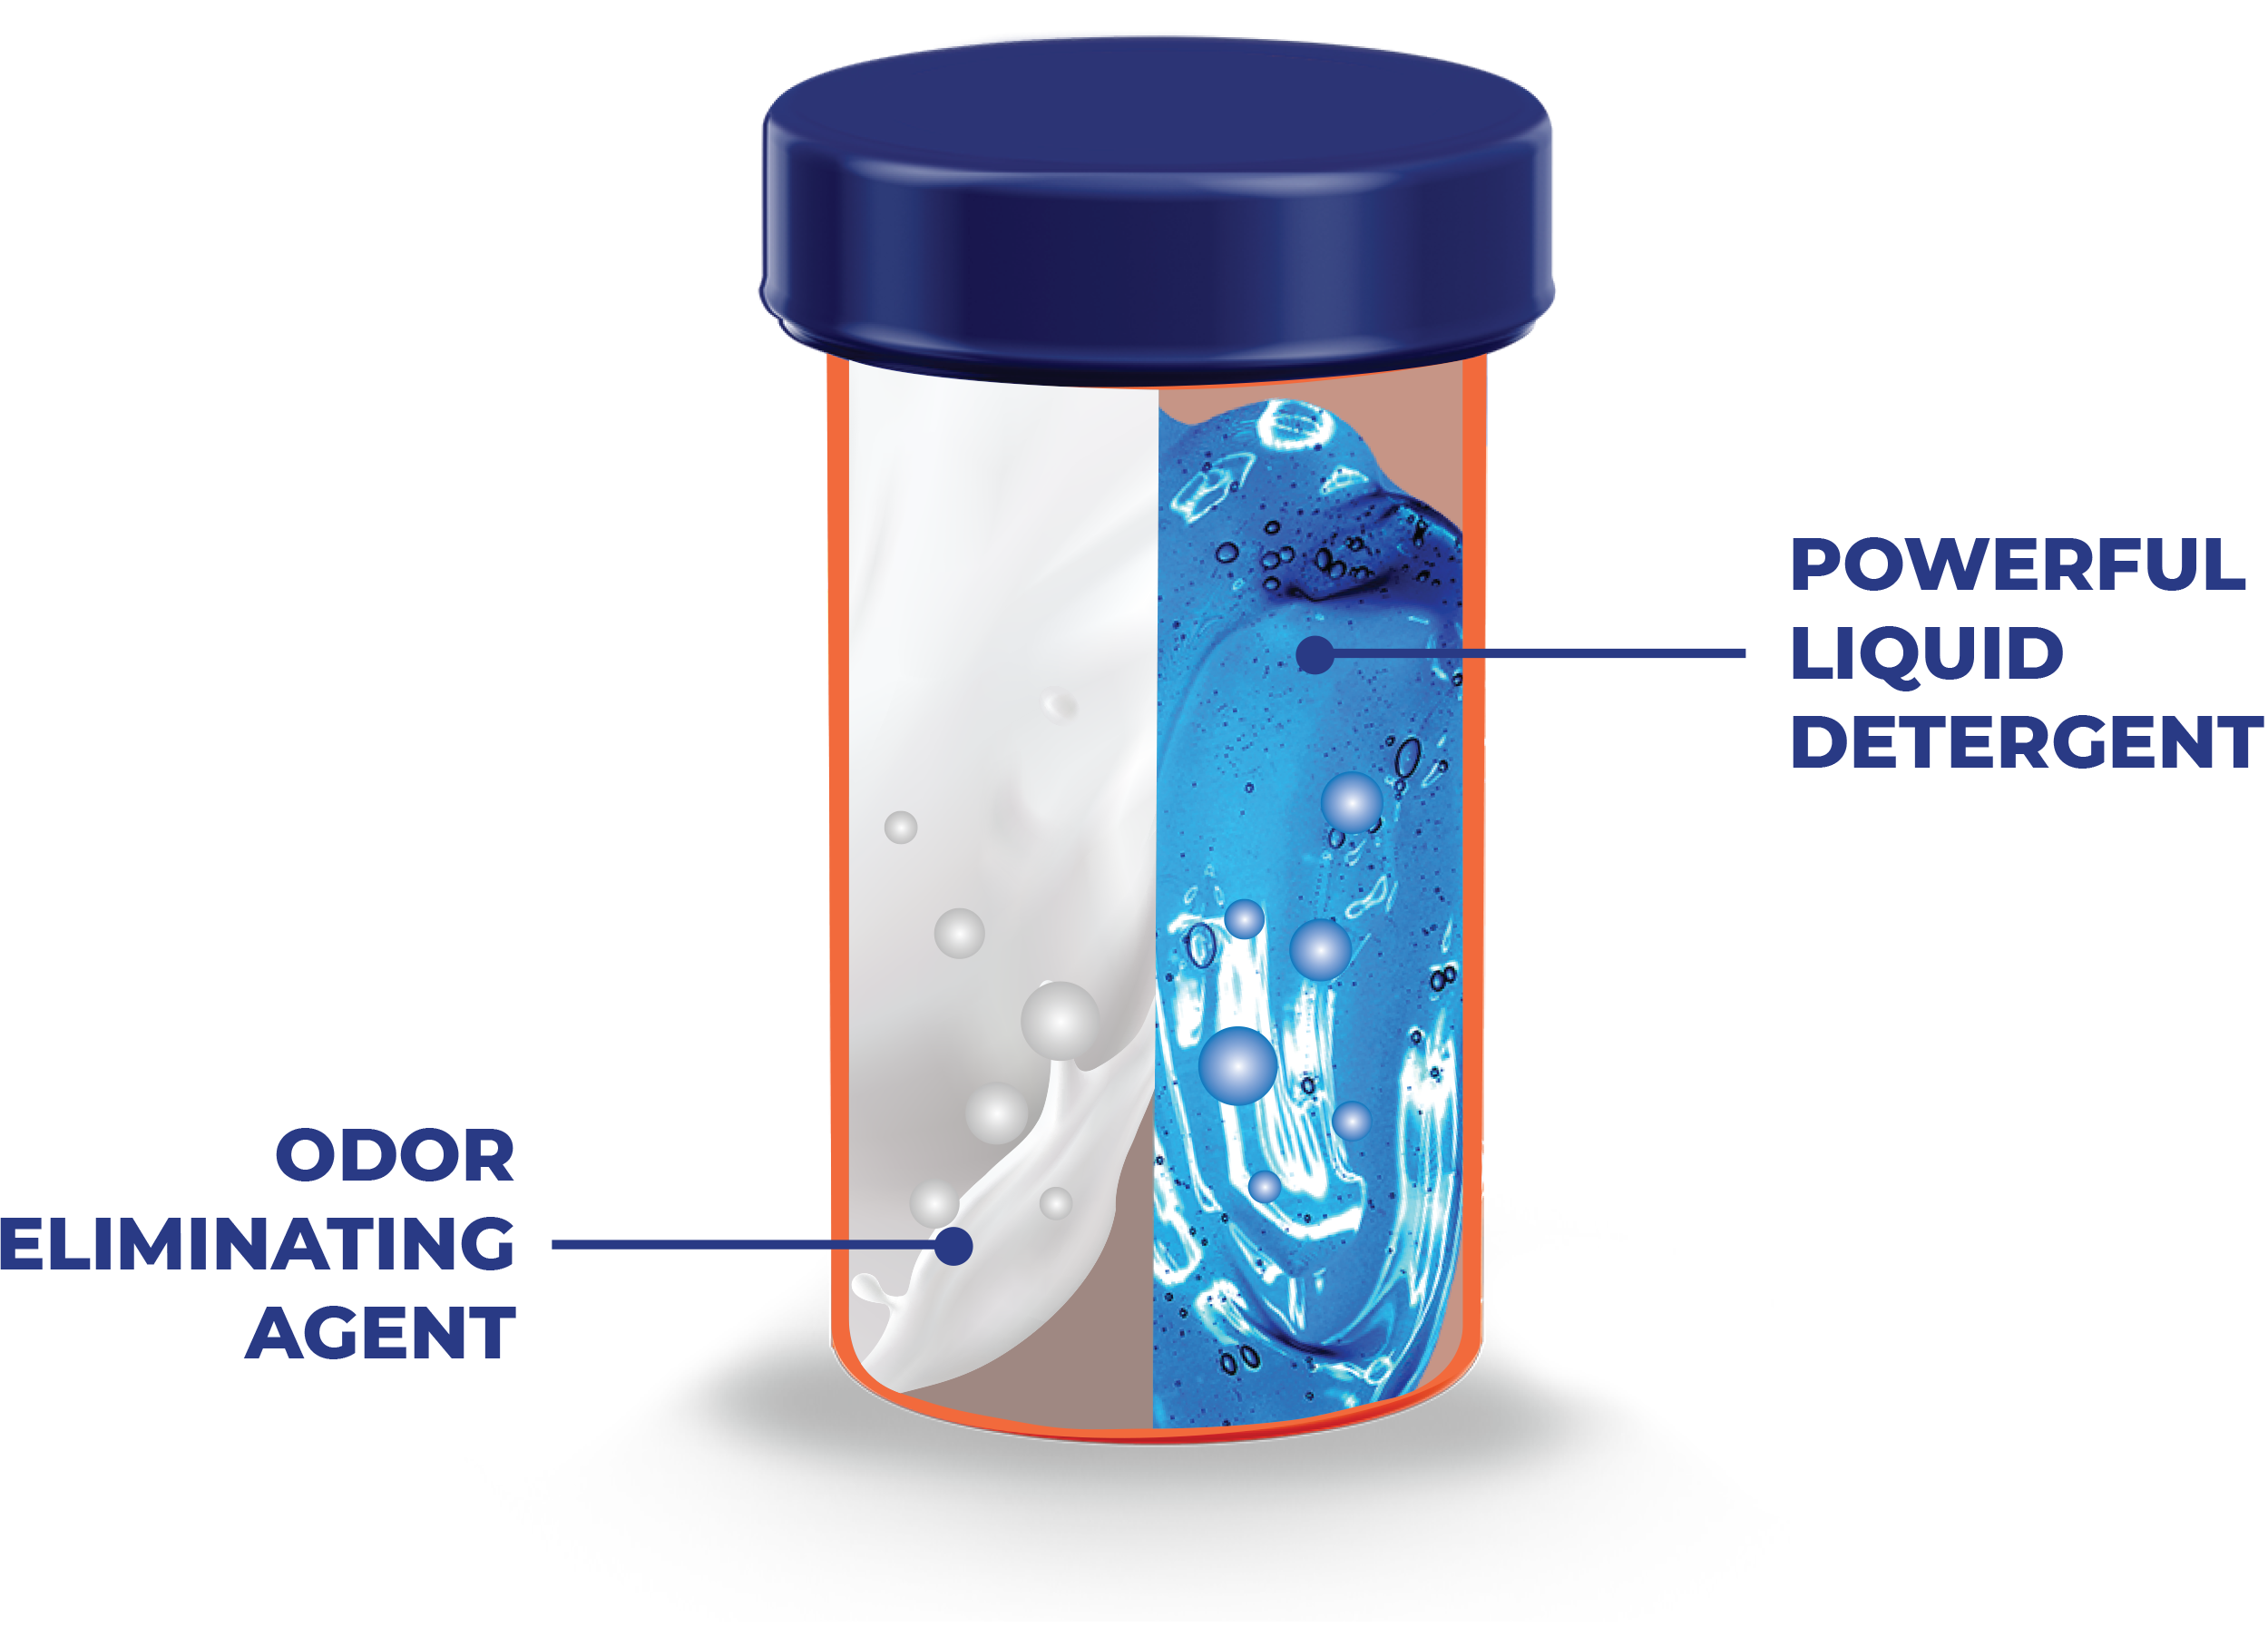 The dual-chamber keeps the powerful liquid detergent and an odor-eliminating agent separate until they go into the washing machine.